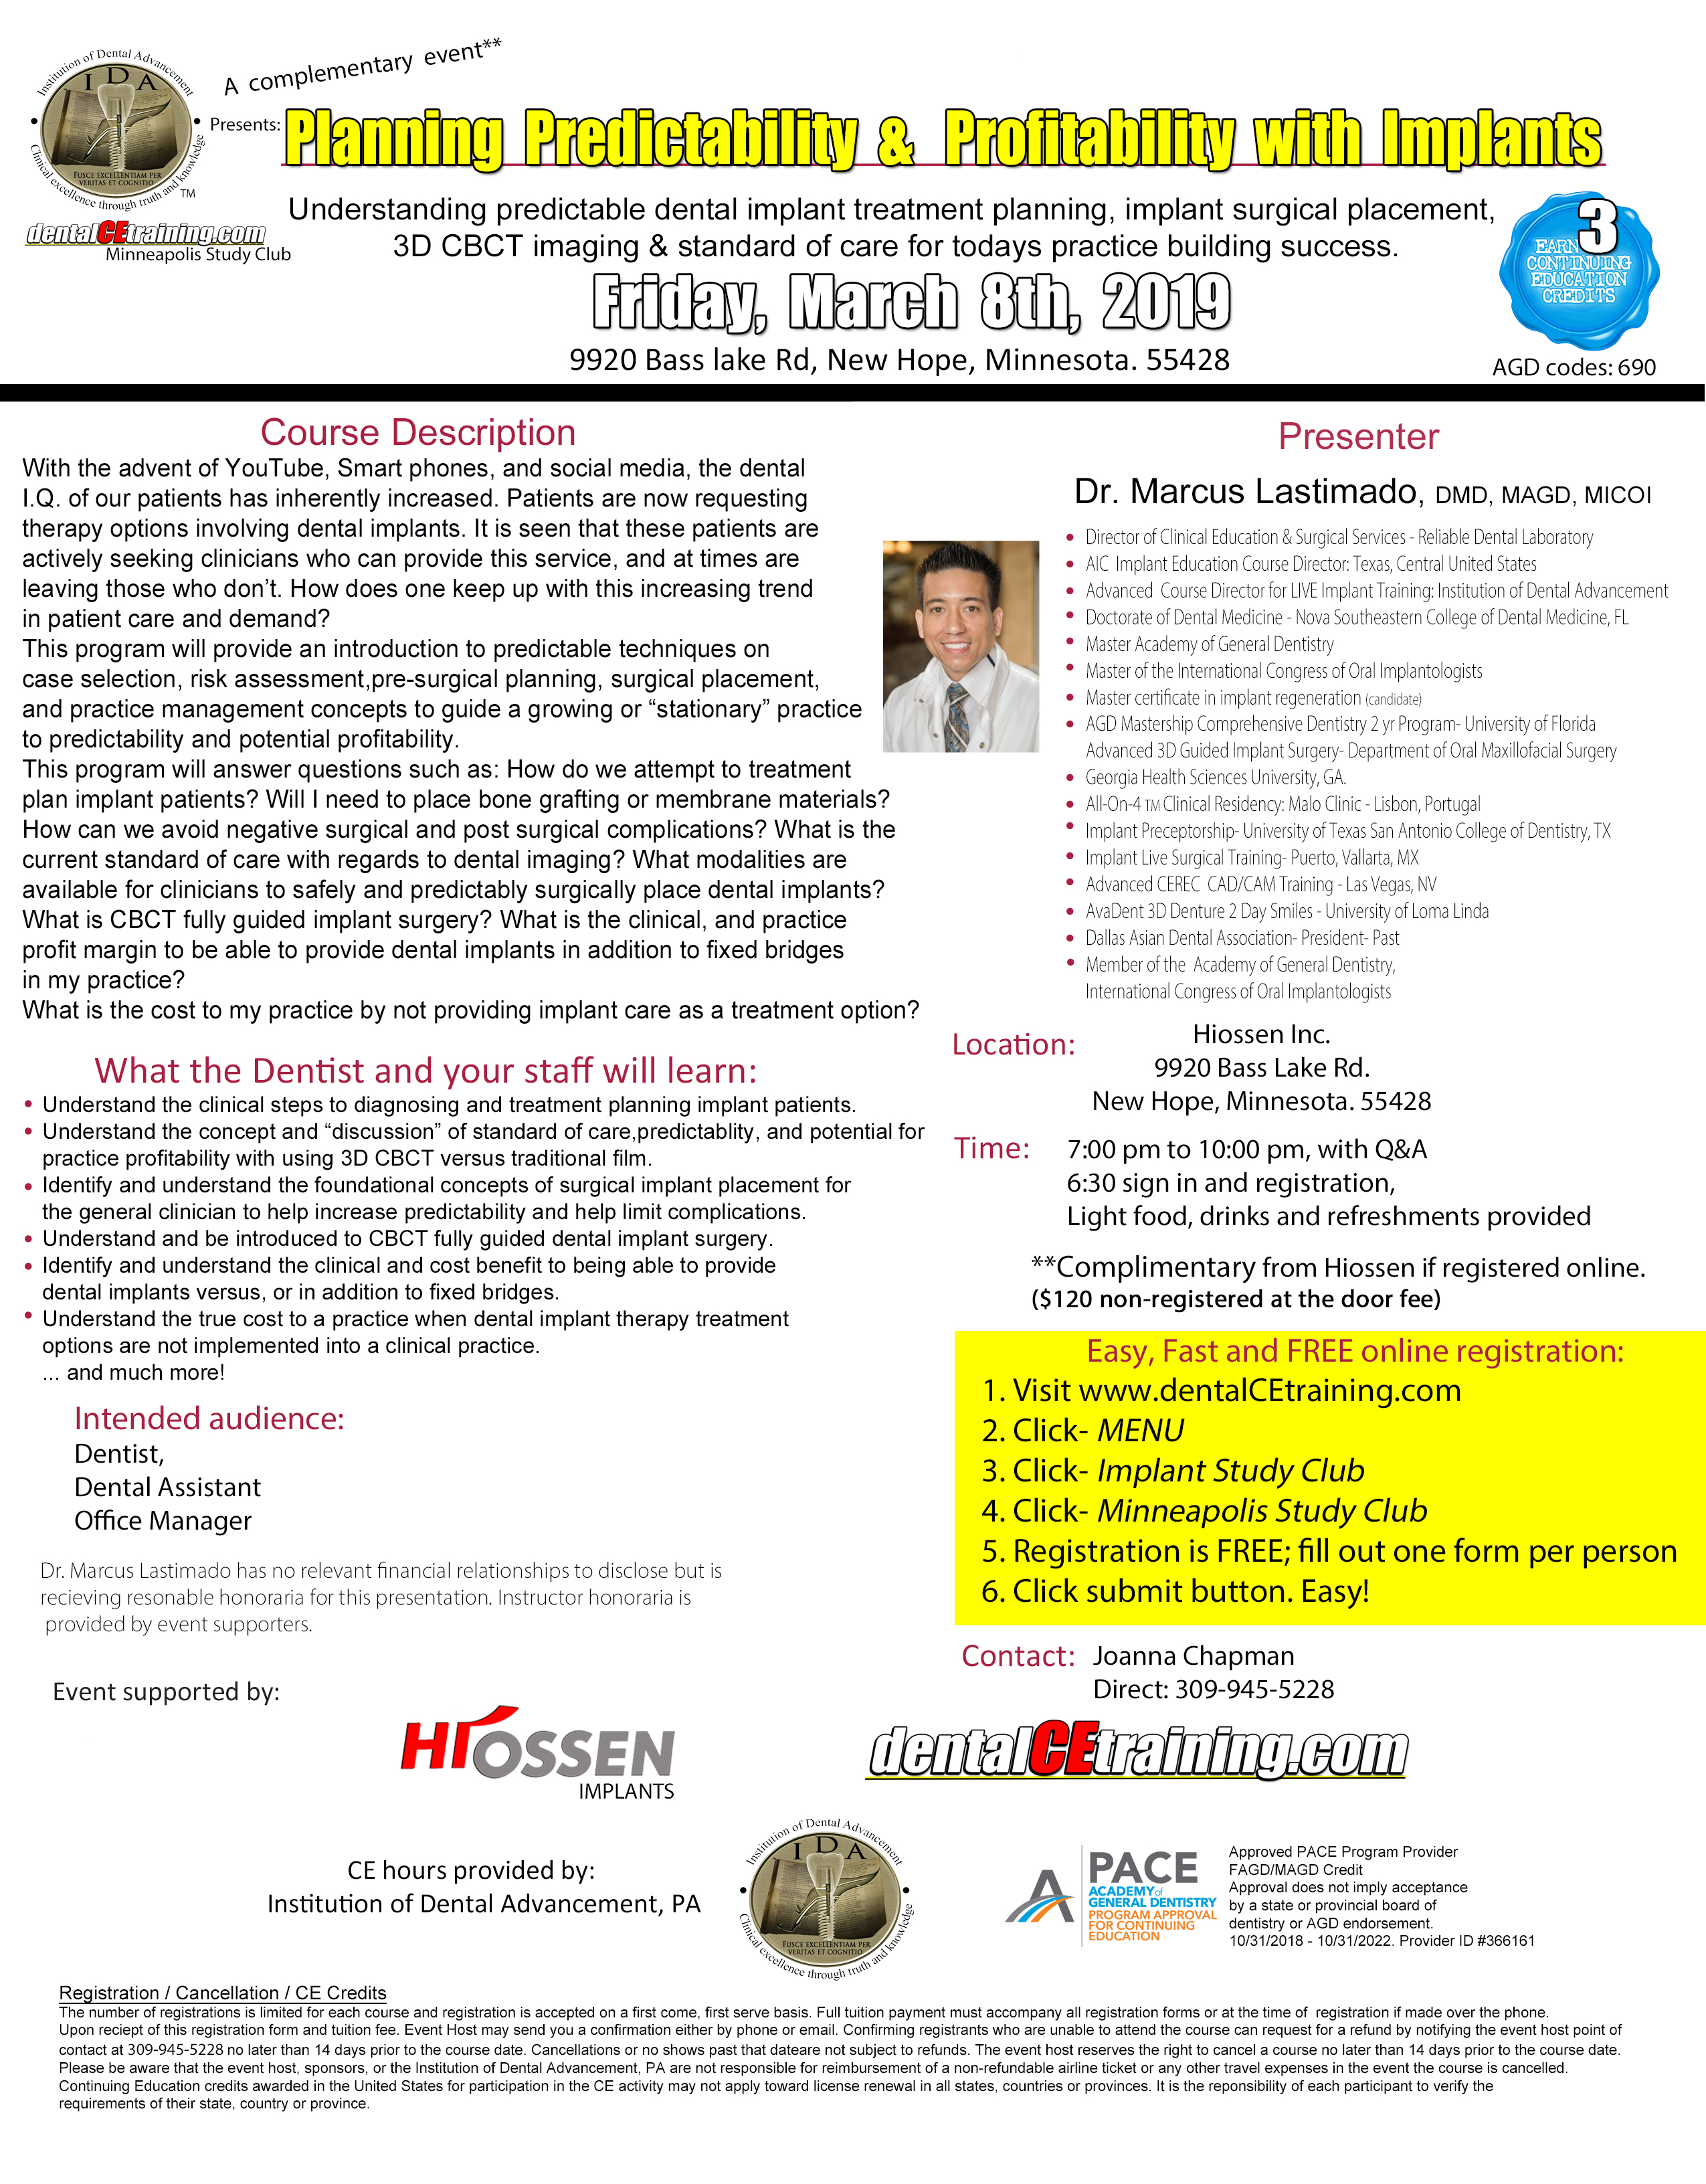 Minneapolis Minnesota dental implant course